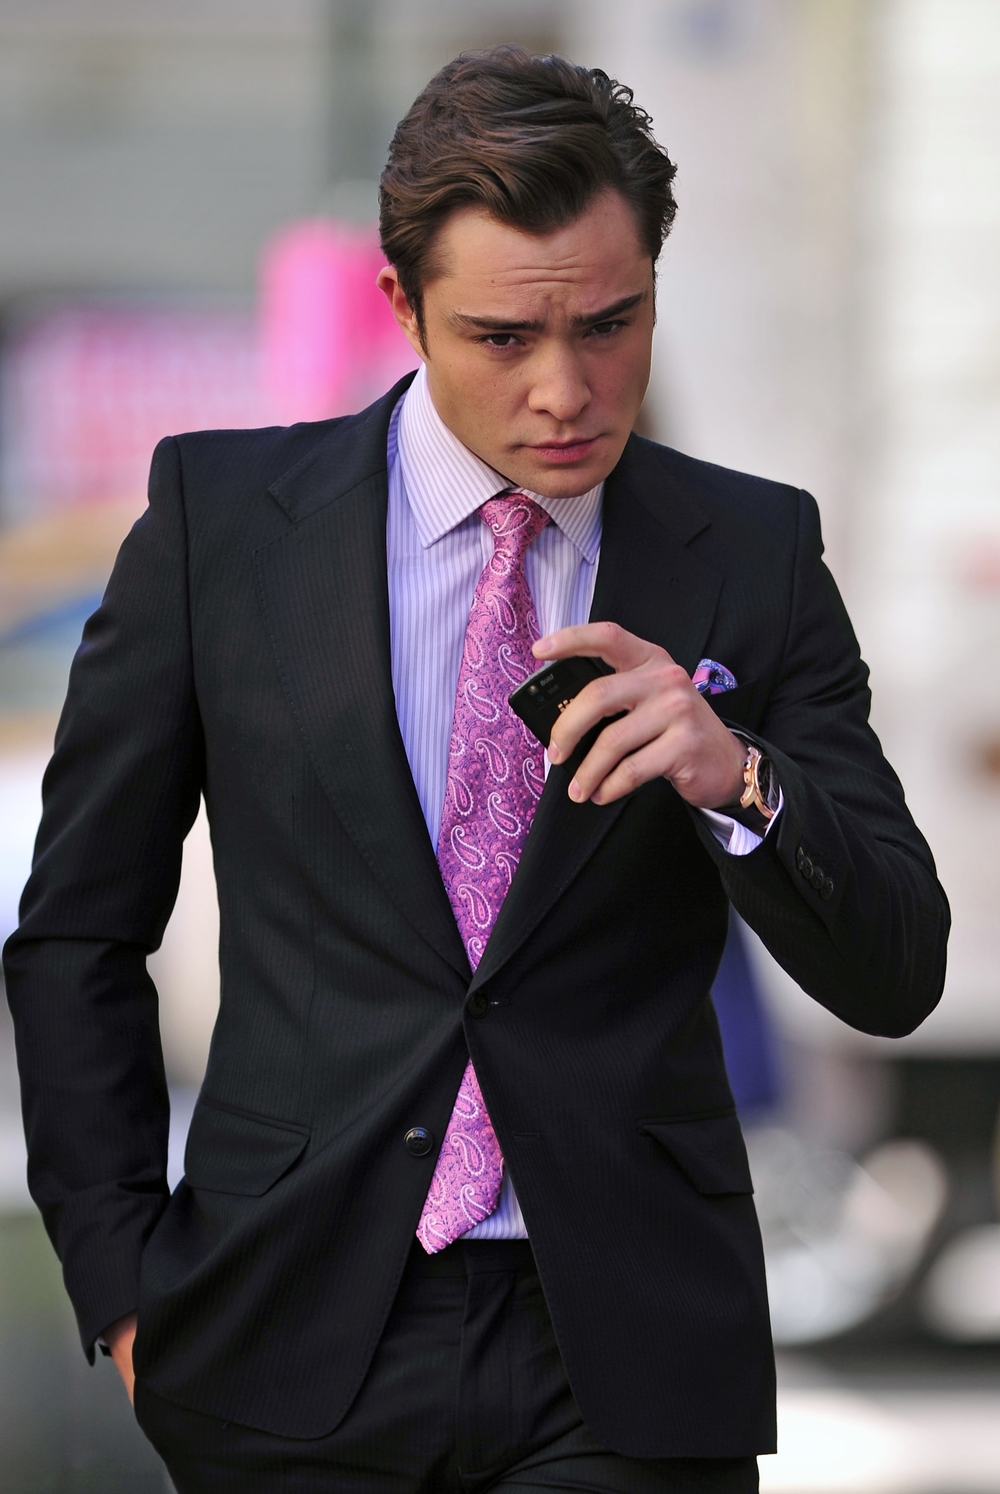 ed-westwick-films-gossip-girl-in-nyc-6.jpg